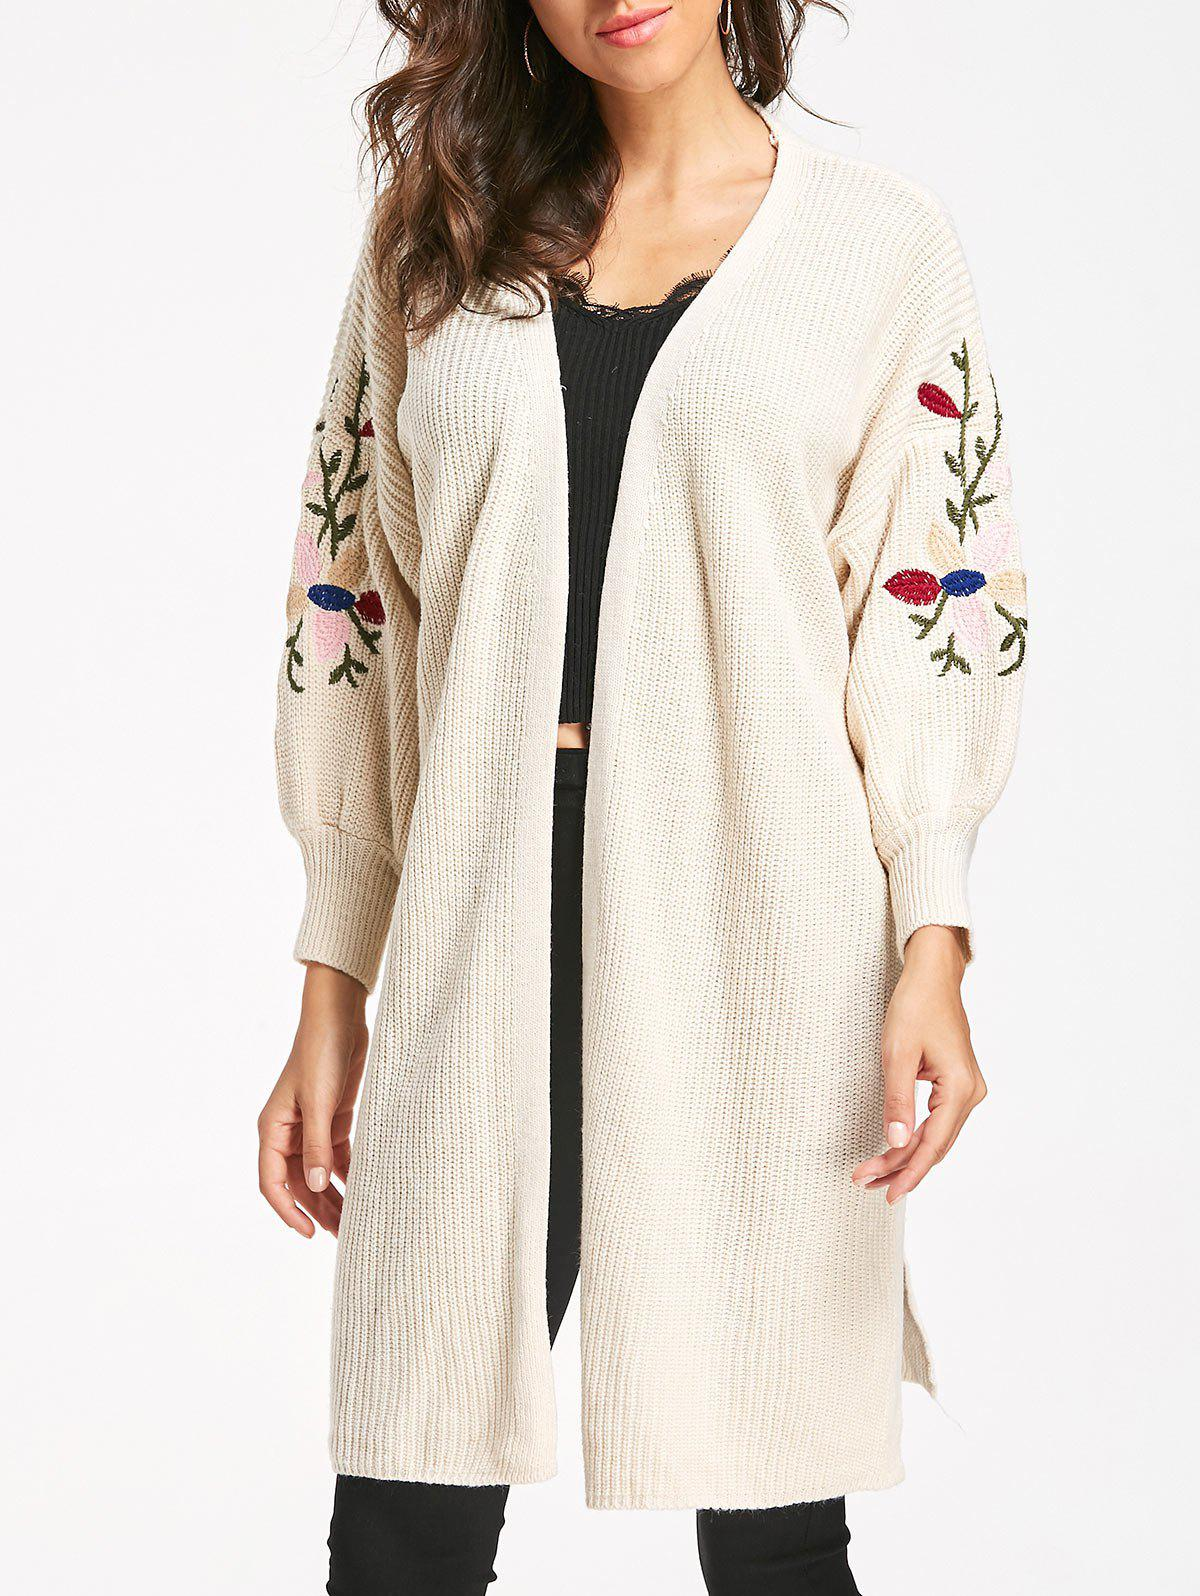 2018 Embroidered Cable Knit Long Cardigan OFF WHITE ONE SIZE In ...